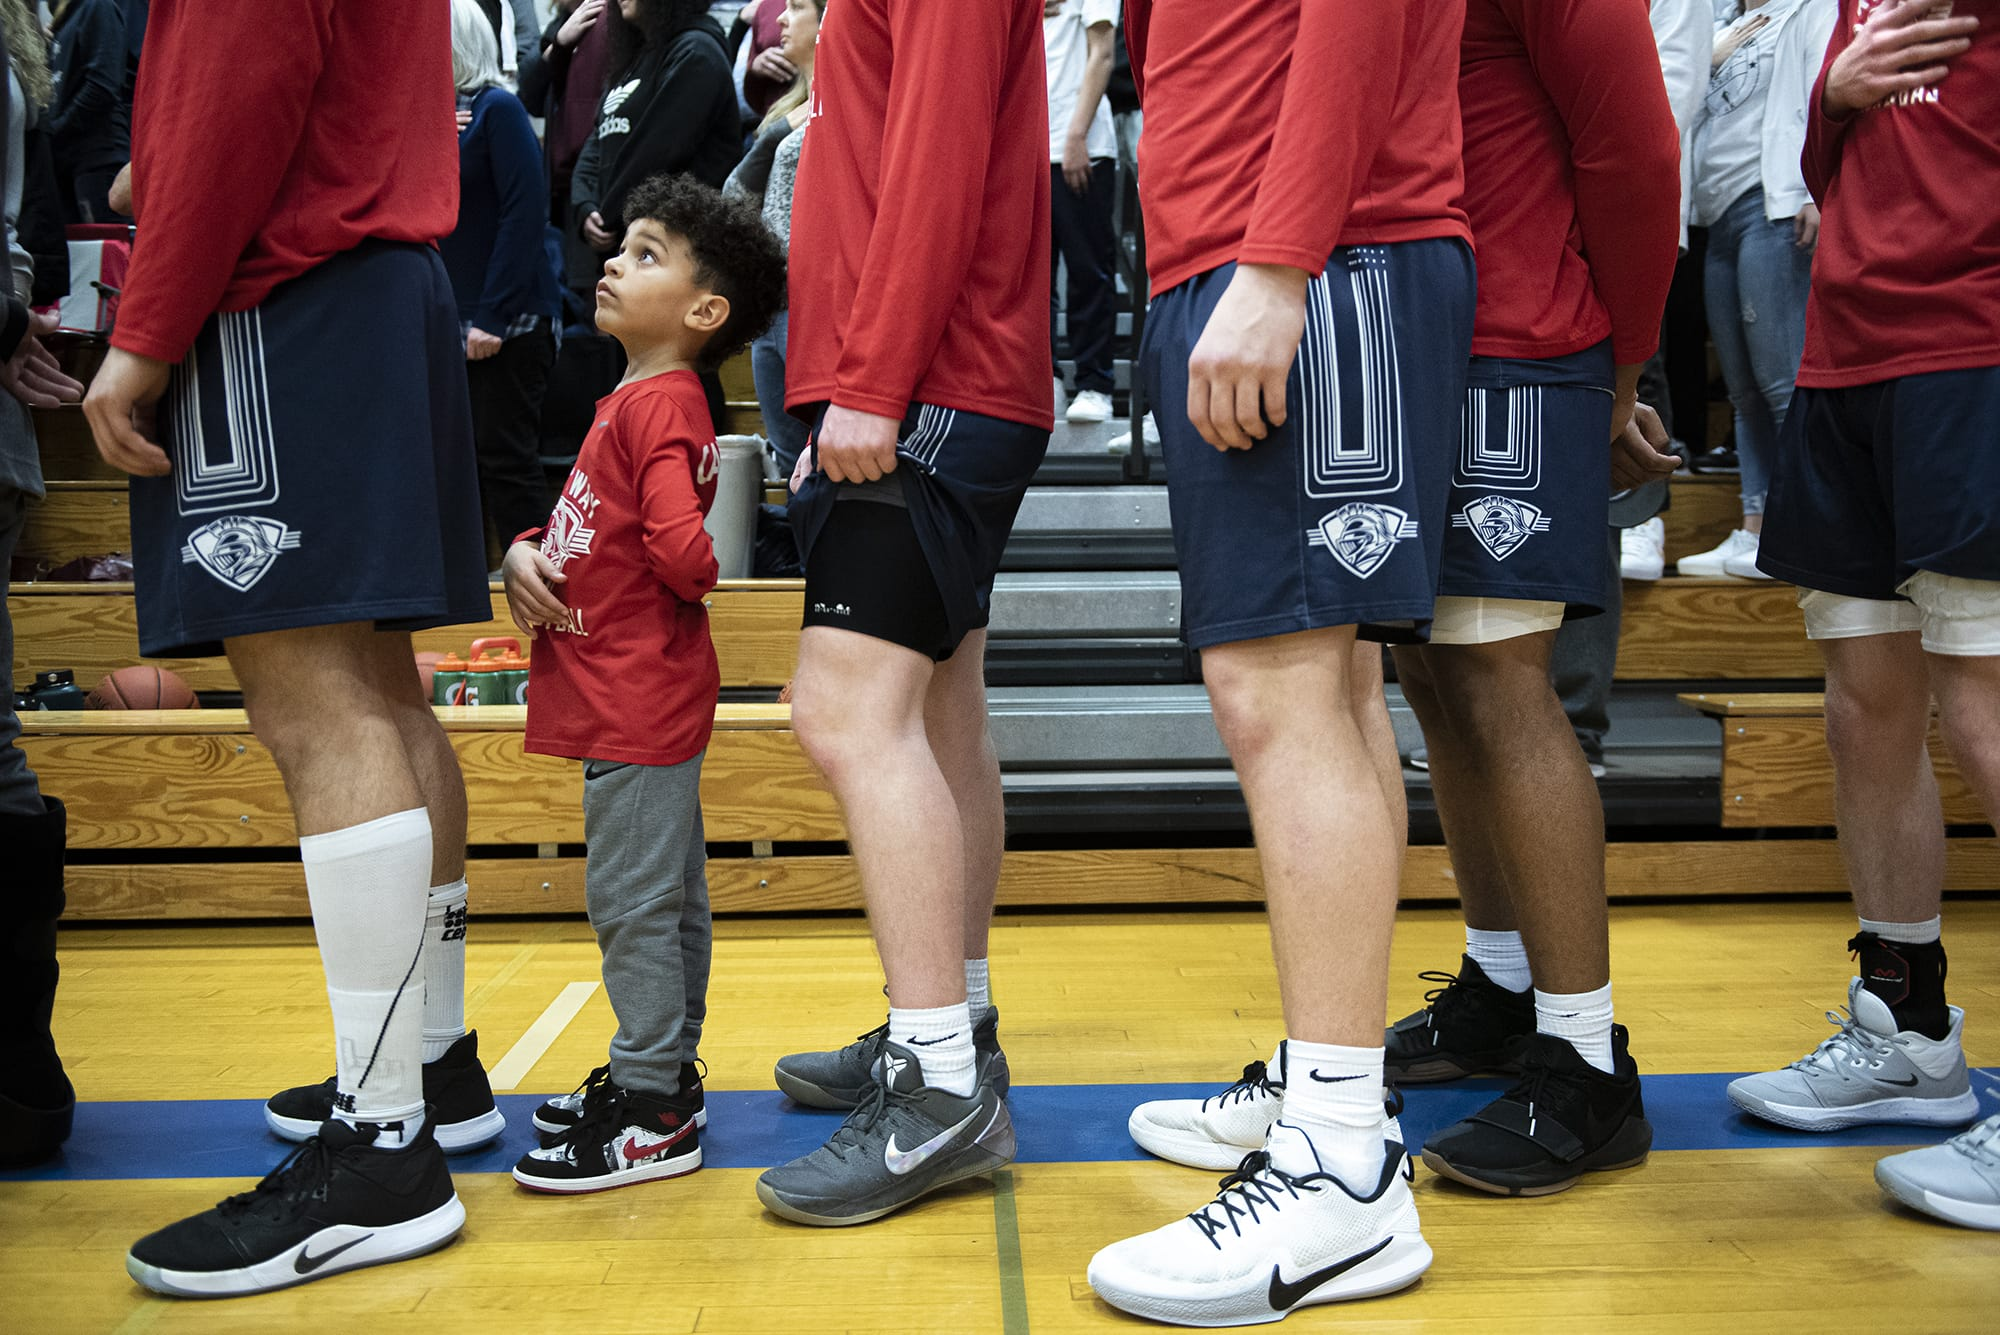 Cayson Bay, son of King's Way assistant coach Kal Bay, stands with the team during the National Anthem prior to their game against La Center at La Center High School on Thursday night, Feb. 6, 2020. (Nathan Howard/The Columbian)